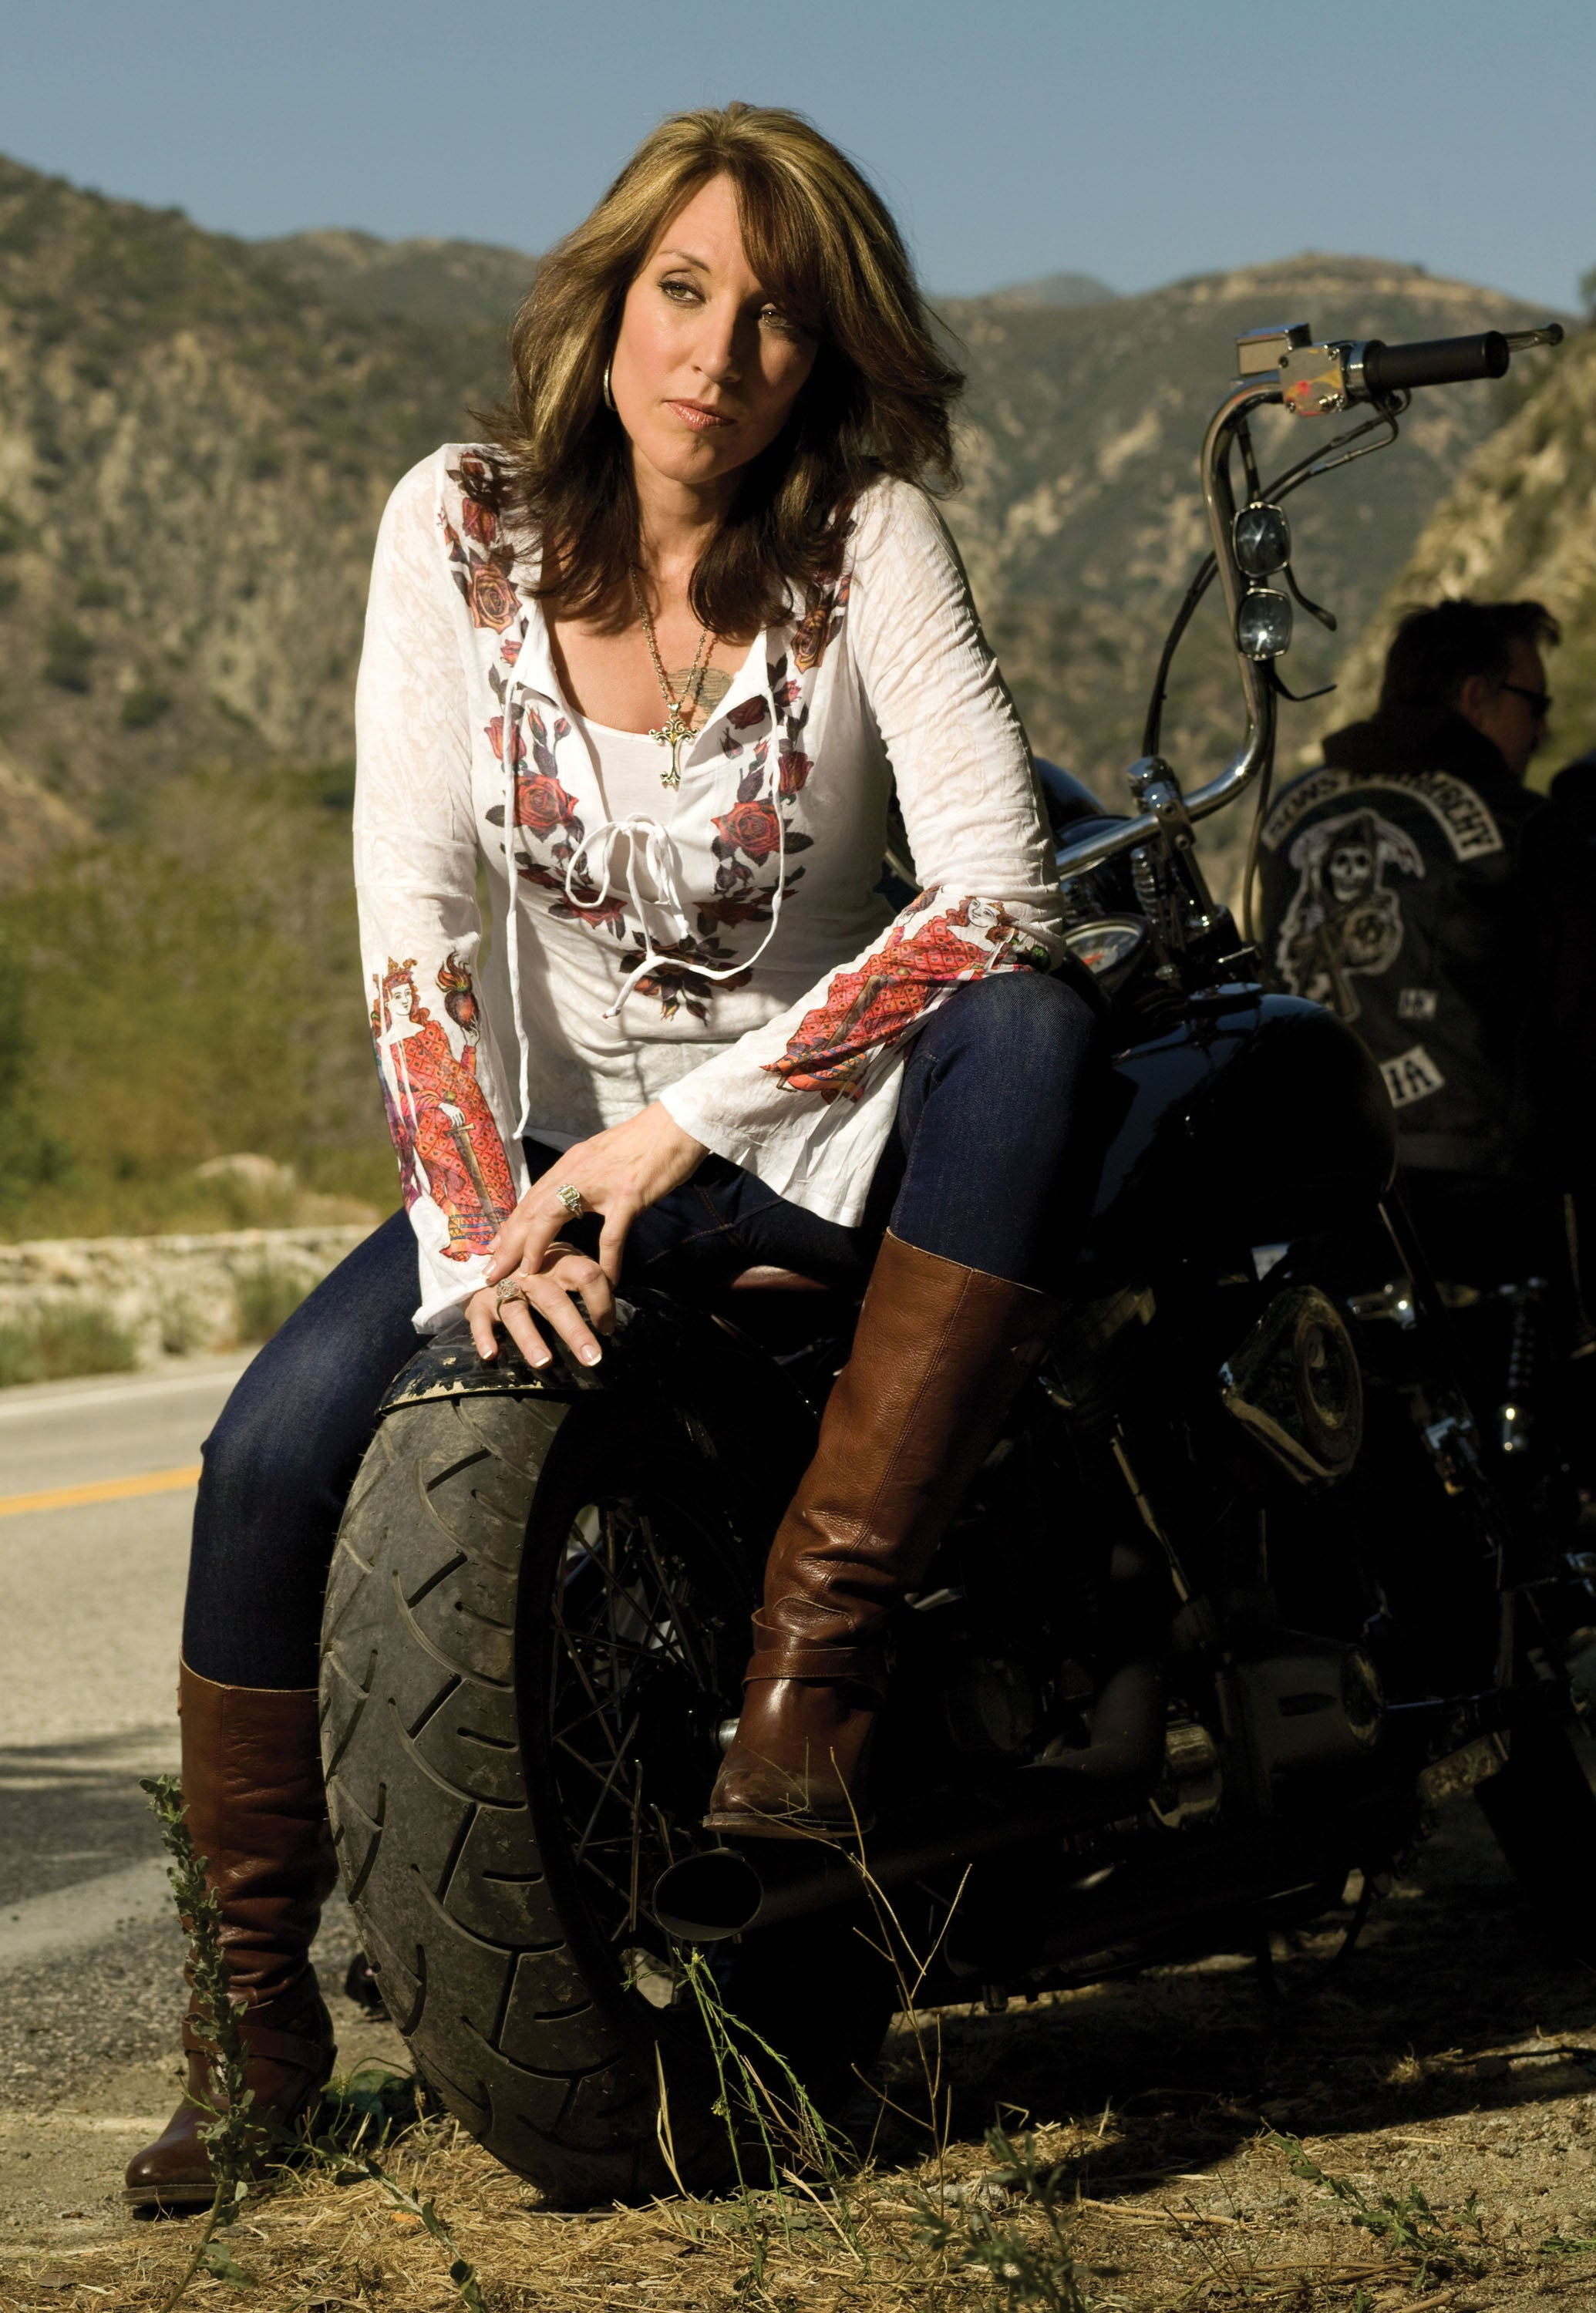 SONS OF ANARCHY: Gemma's Brown Healed Long Boots